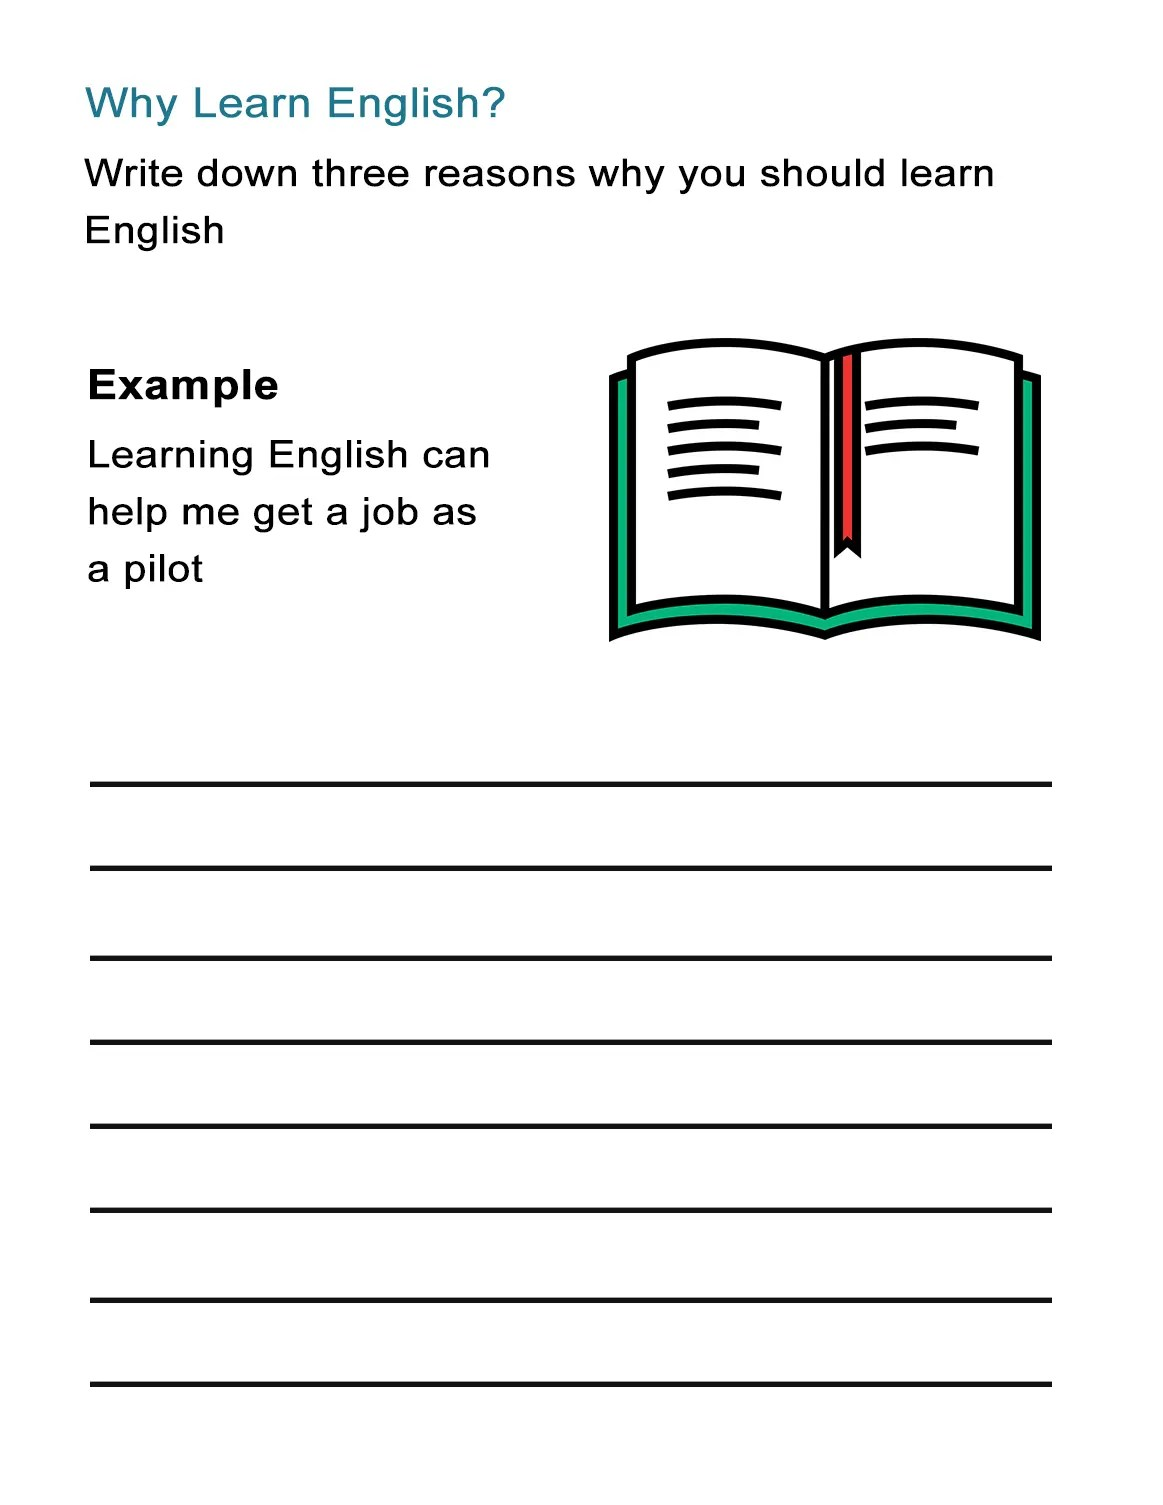 Why Learn English Worksheet On The Benefits Of Learning English